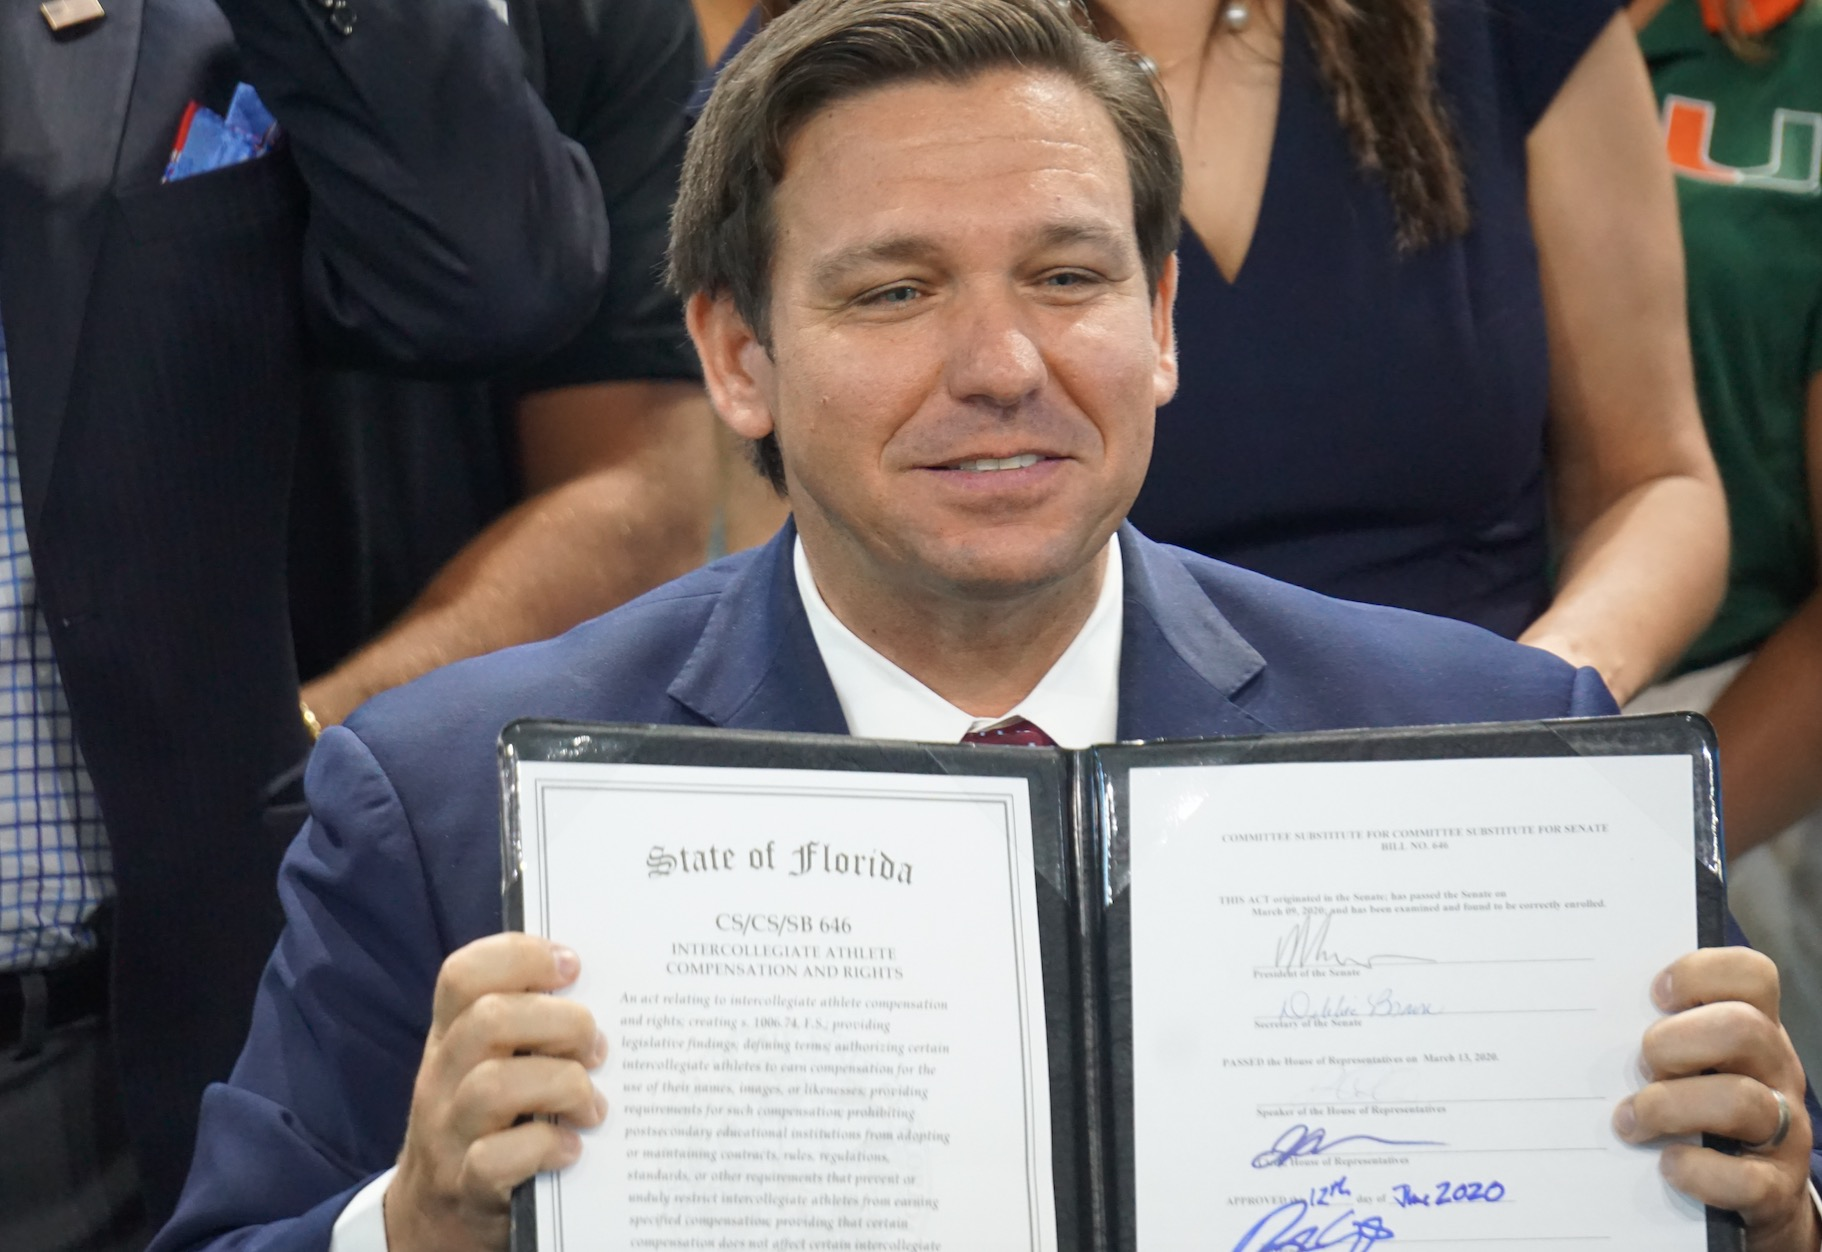 JUICE – Florida Politics' Juicy Read – 6.25.20 – DeSantis Pays Teachers – Trump Calls In National Guard – Drilling For Oil in Florida? – Mucarsel-Powell Targeted By National GOP